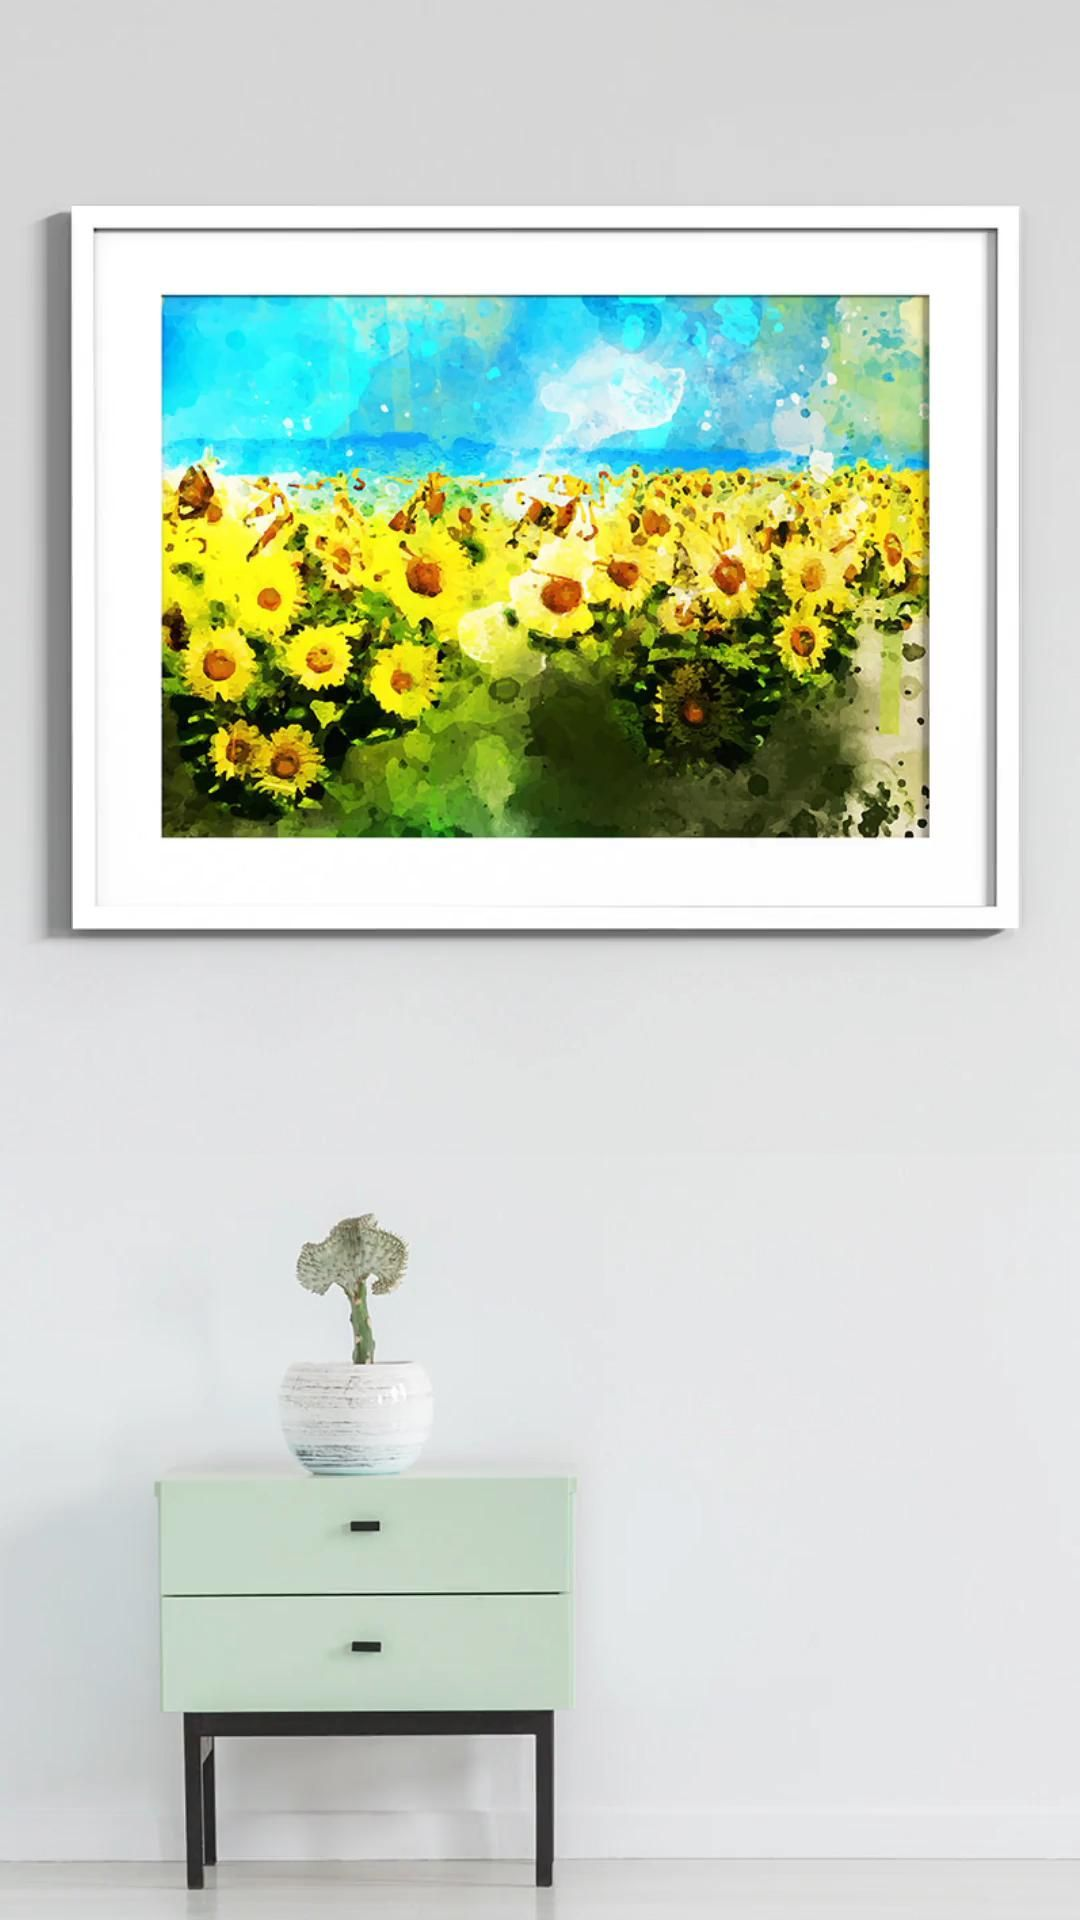 Fields of Sunflowers | Canvas Wall Art | Original Watercolor Painting for Home and Office Decor